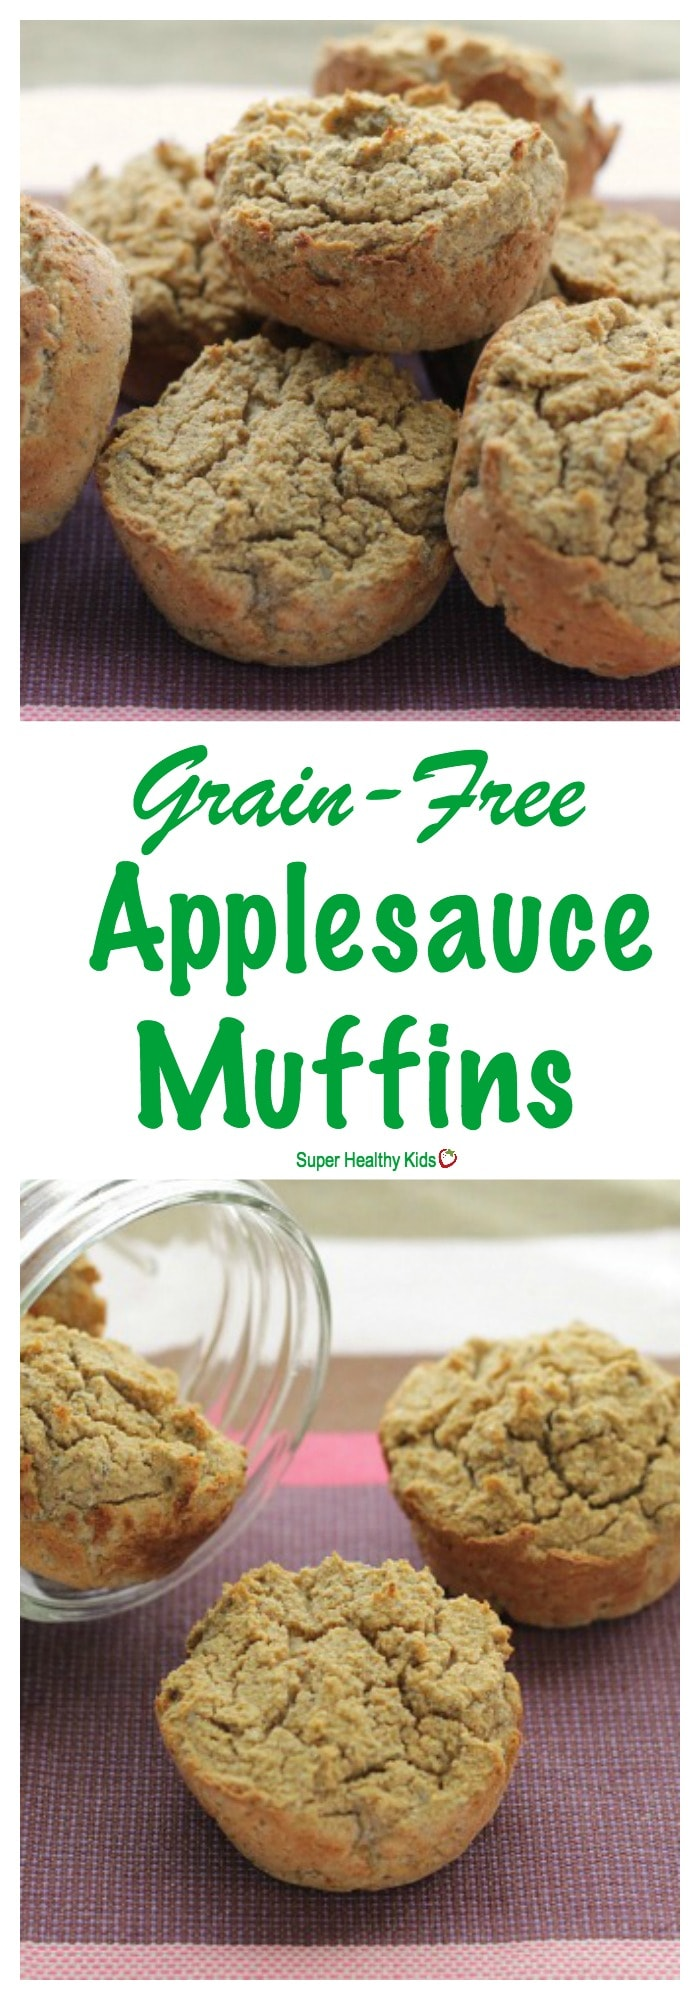 FOOD - Grain-Free Applesauce Muffins. Your family will never notice that these moist muffins are free from grains and gluten! http://www.superhealthykids.com/grain-free-applesauce-muffins-recipe/